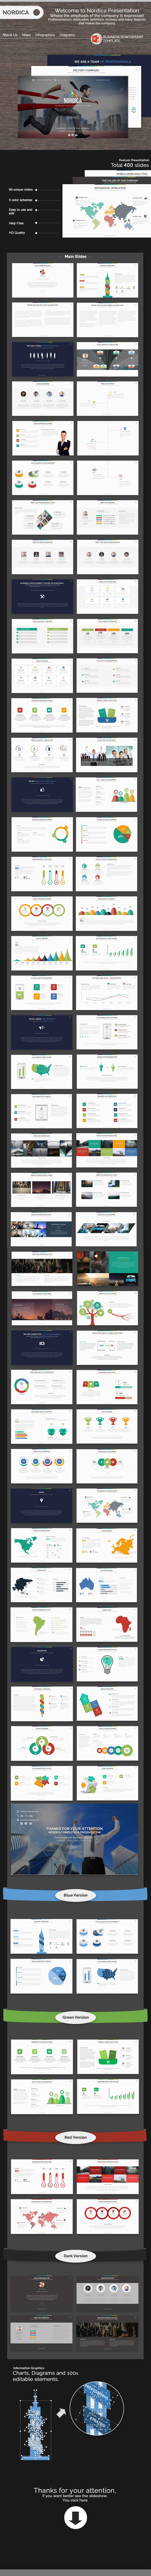 GraphicRiver Nordica Business Powerpoint Template 11252854